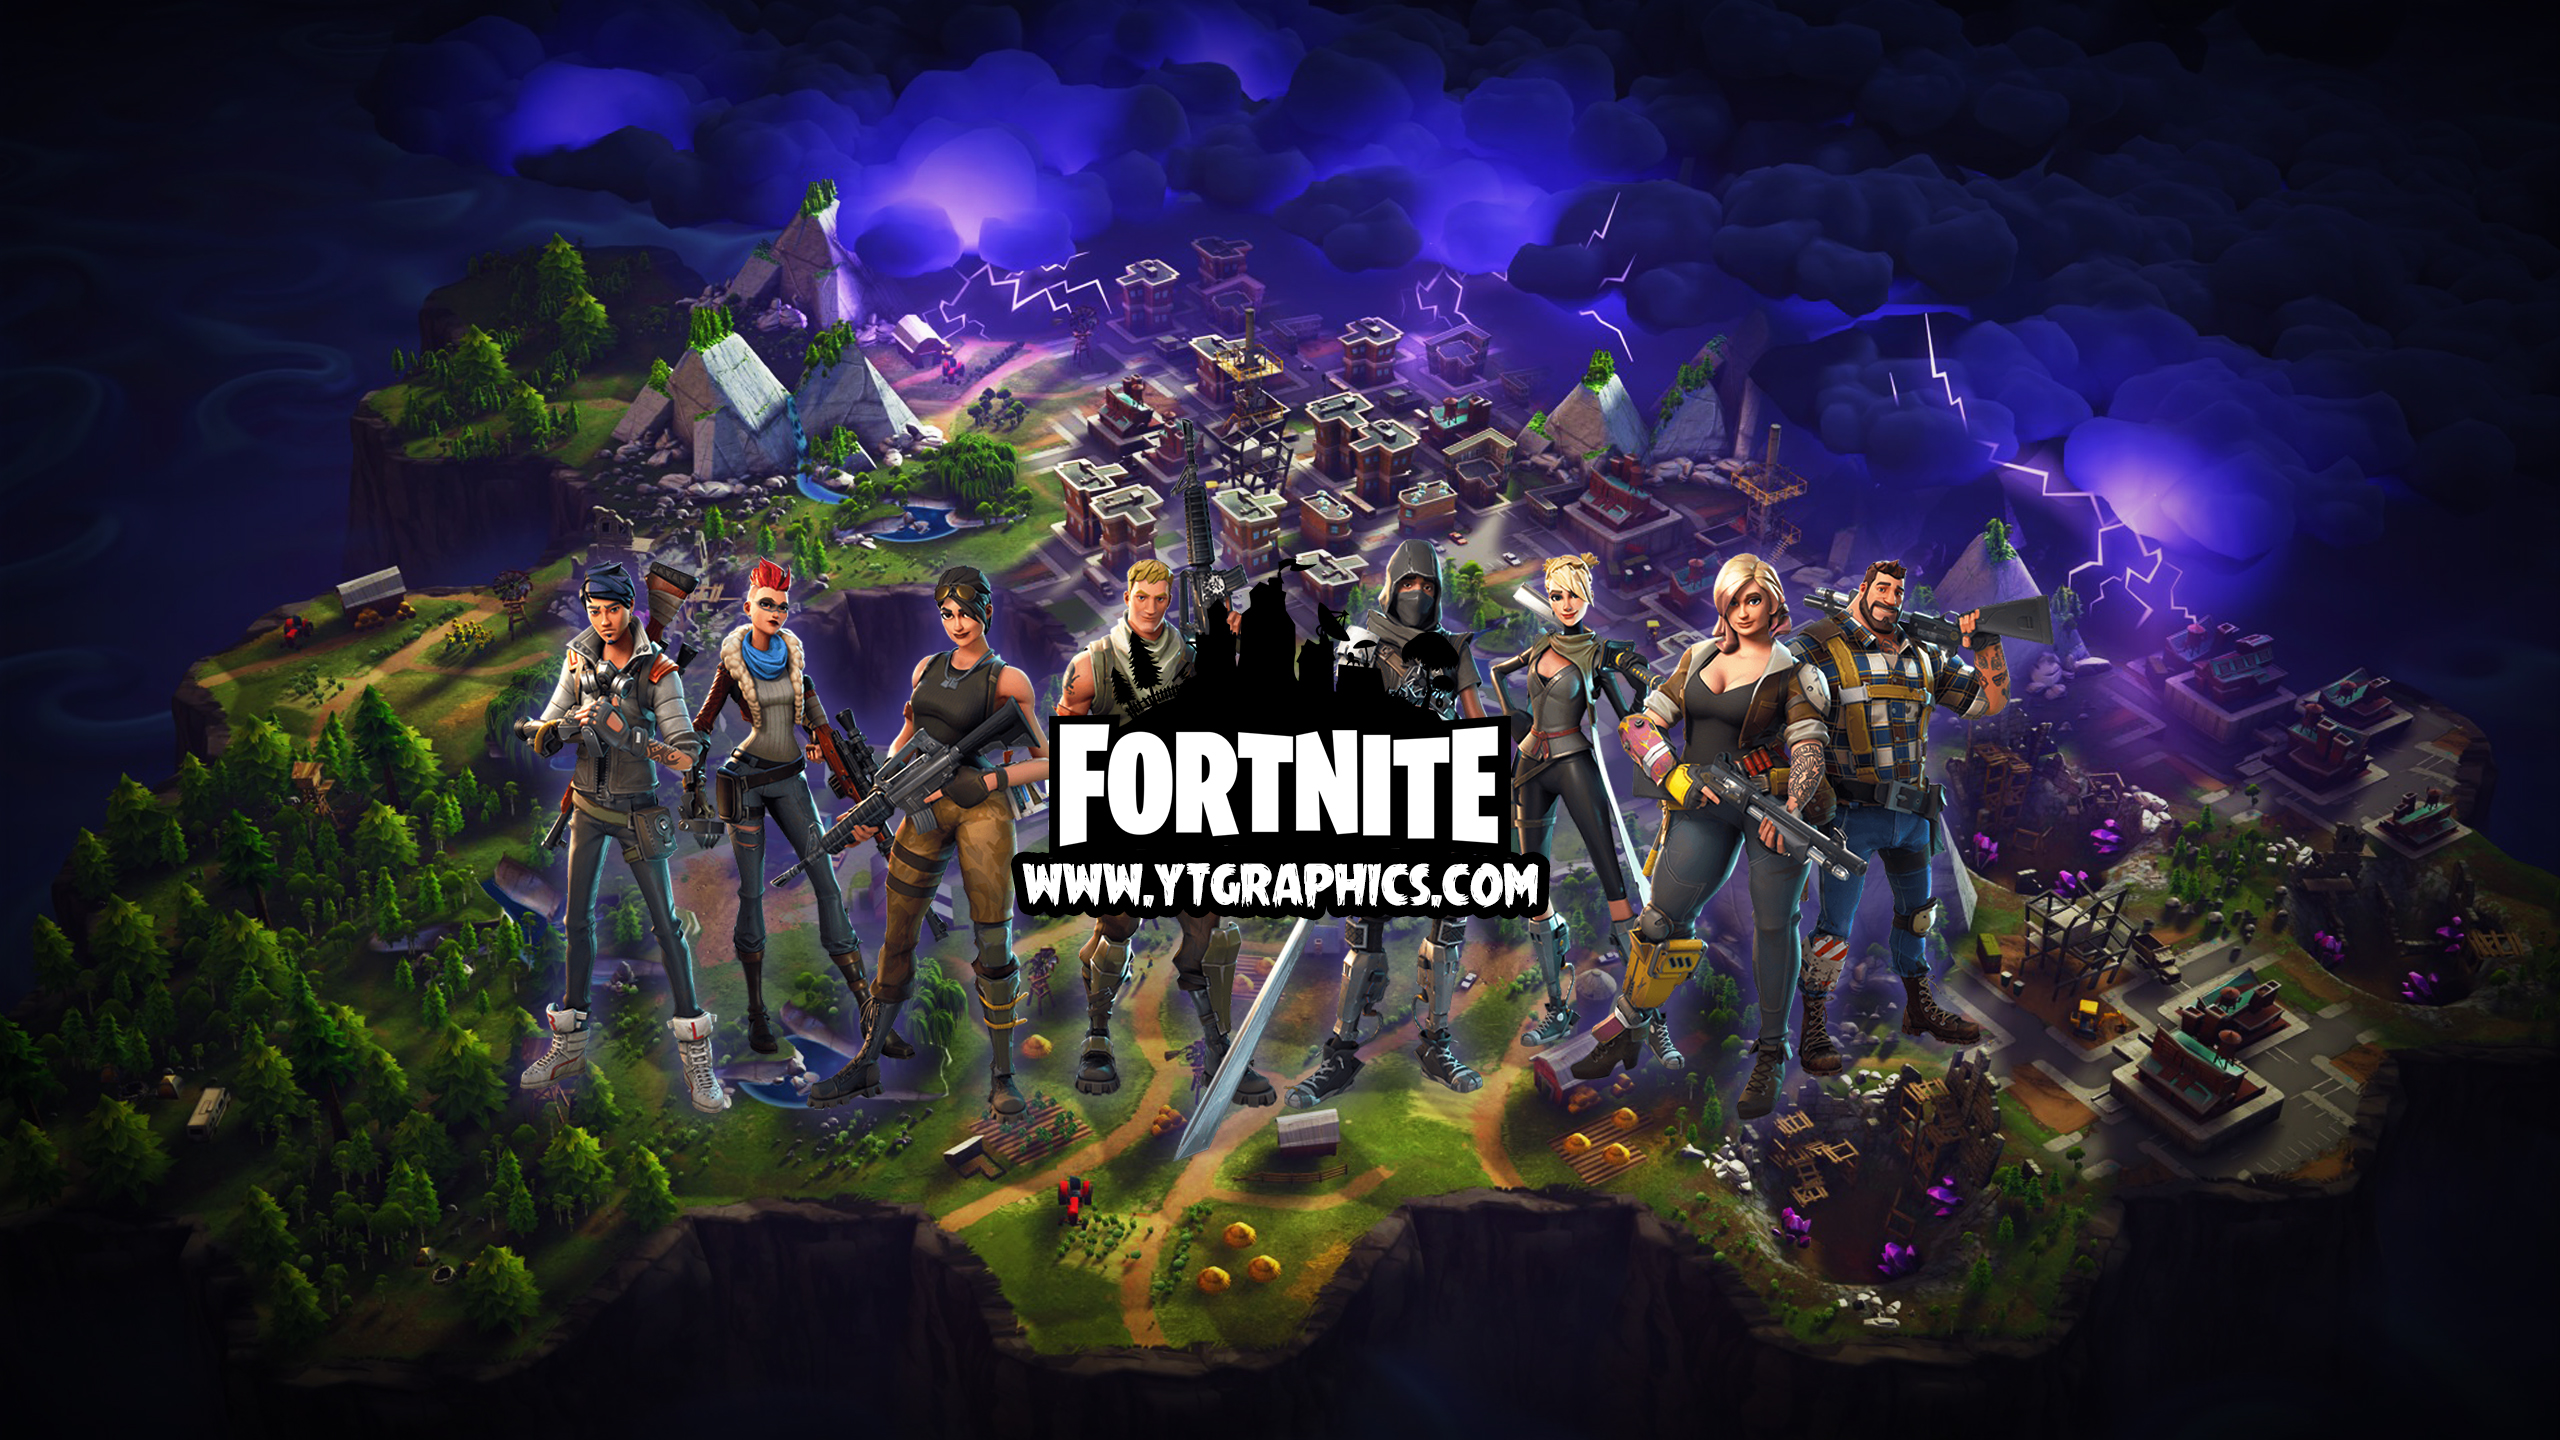 Fortnite Youtube Channel Art Banner